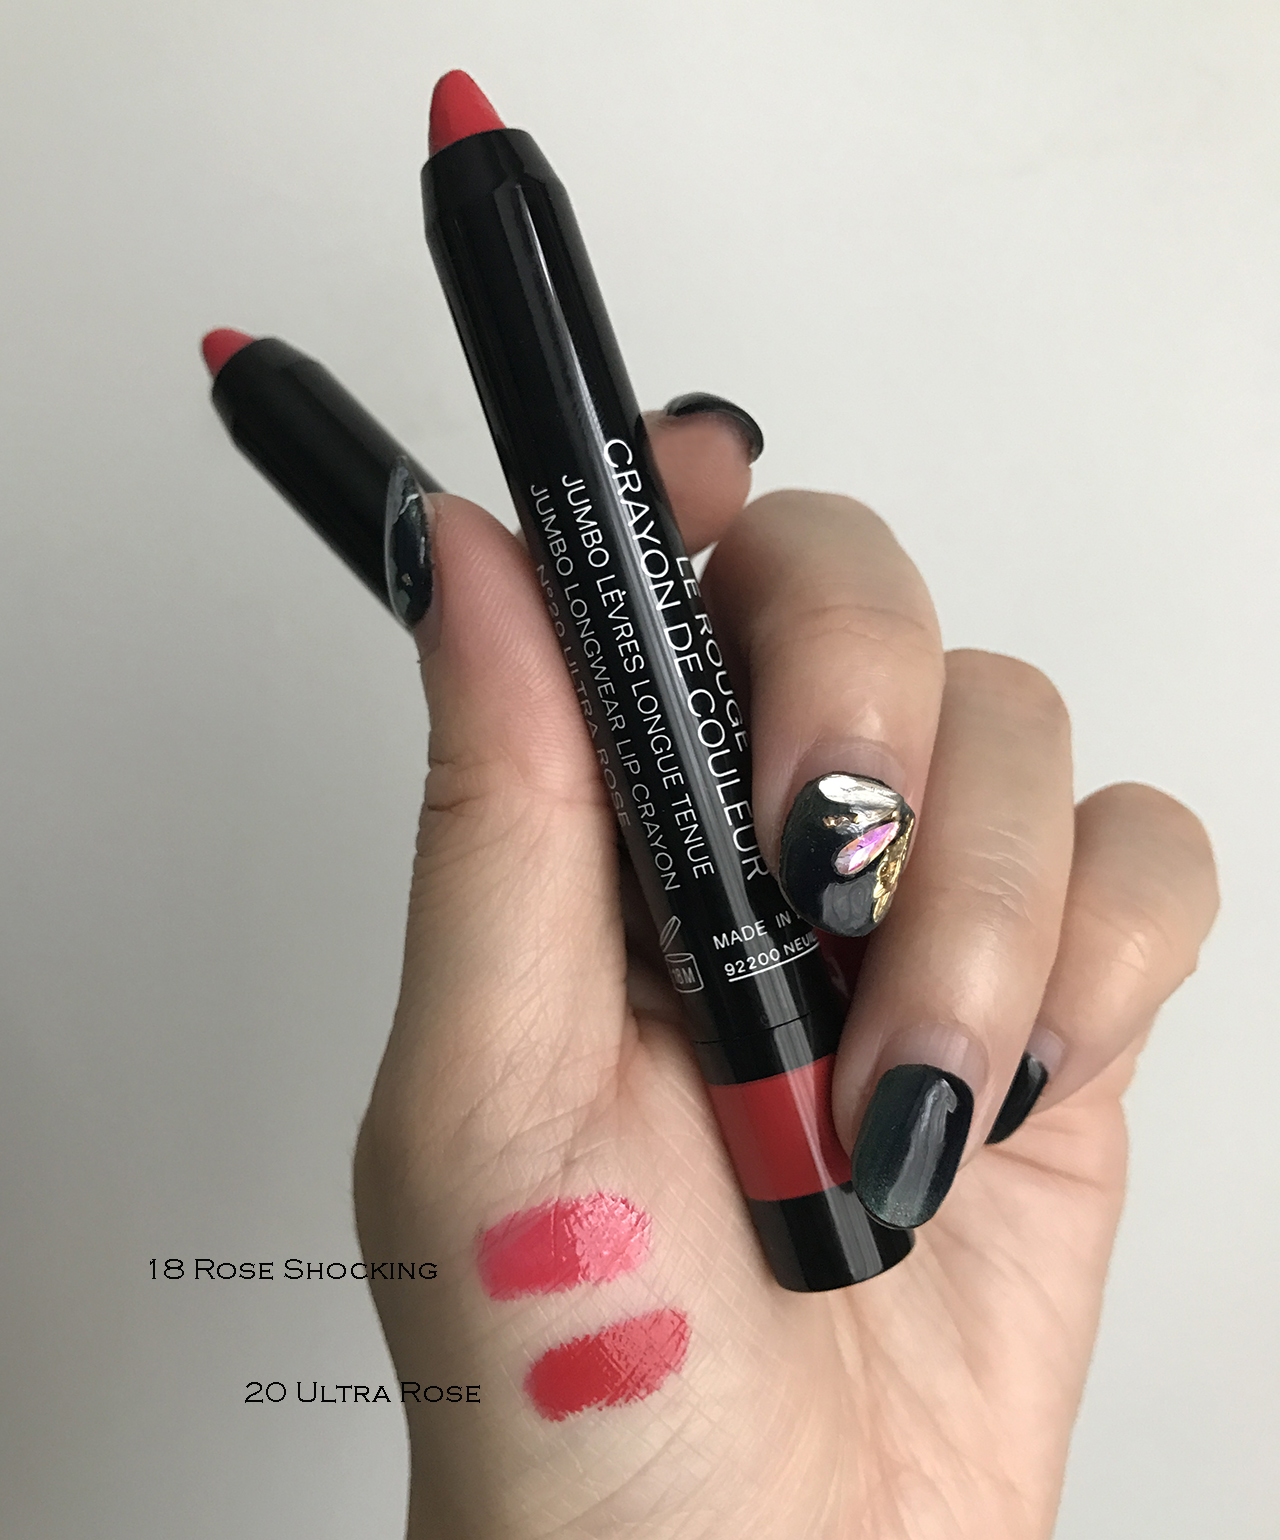 Chanel Le Rouge Crayon de Couleur swatches